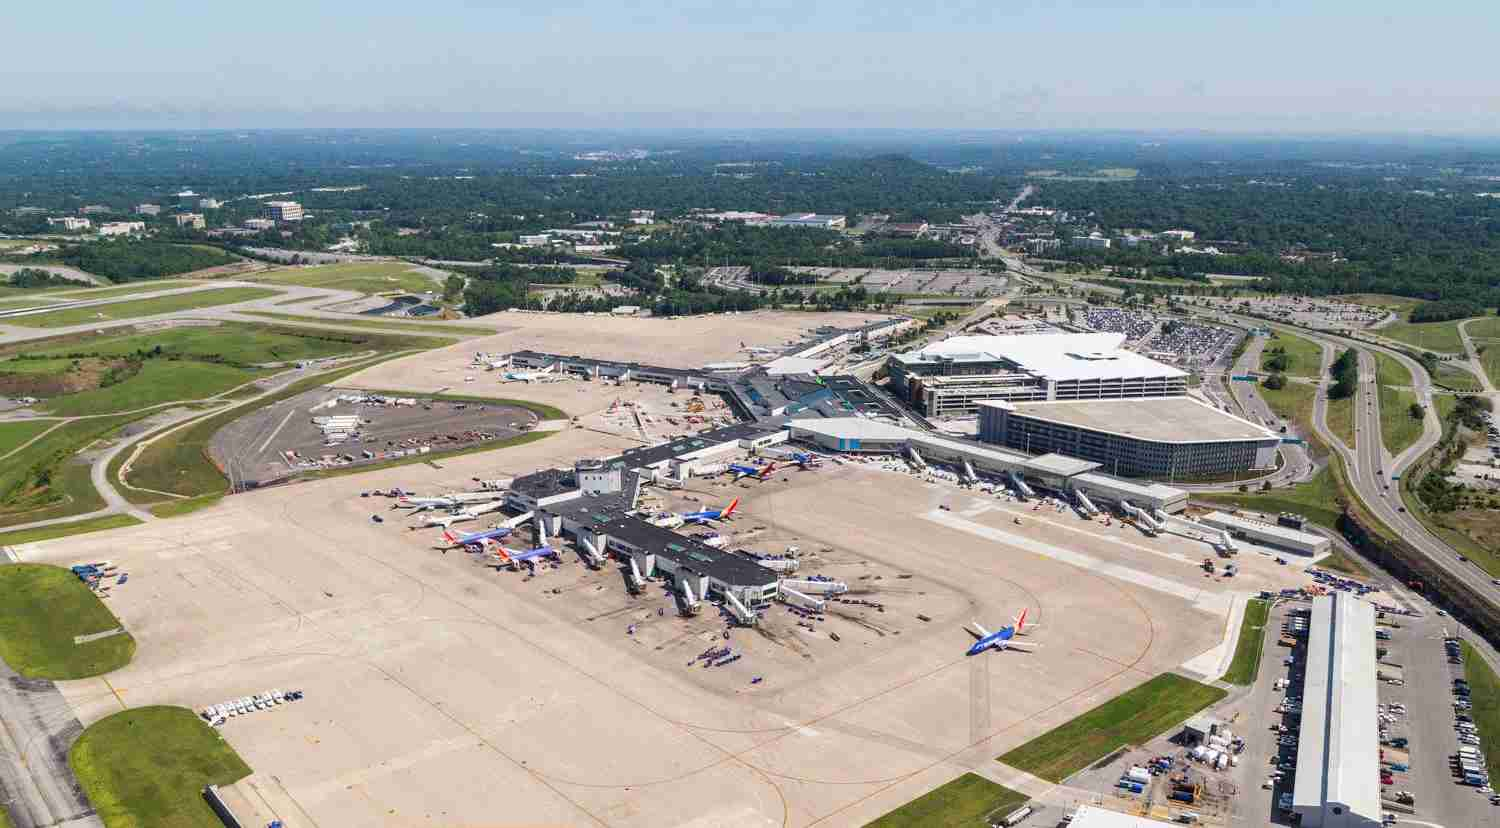 An aerial of the Nashville airport with the new Concourse D X. (Photo courtesy of Nashville International Airport)